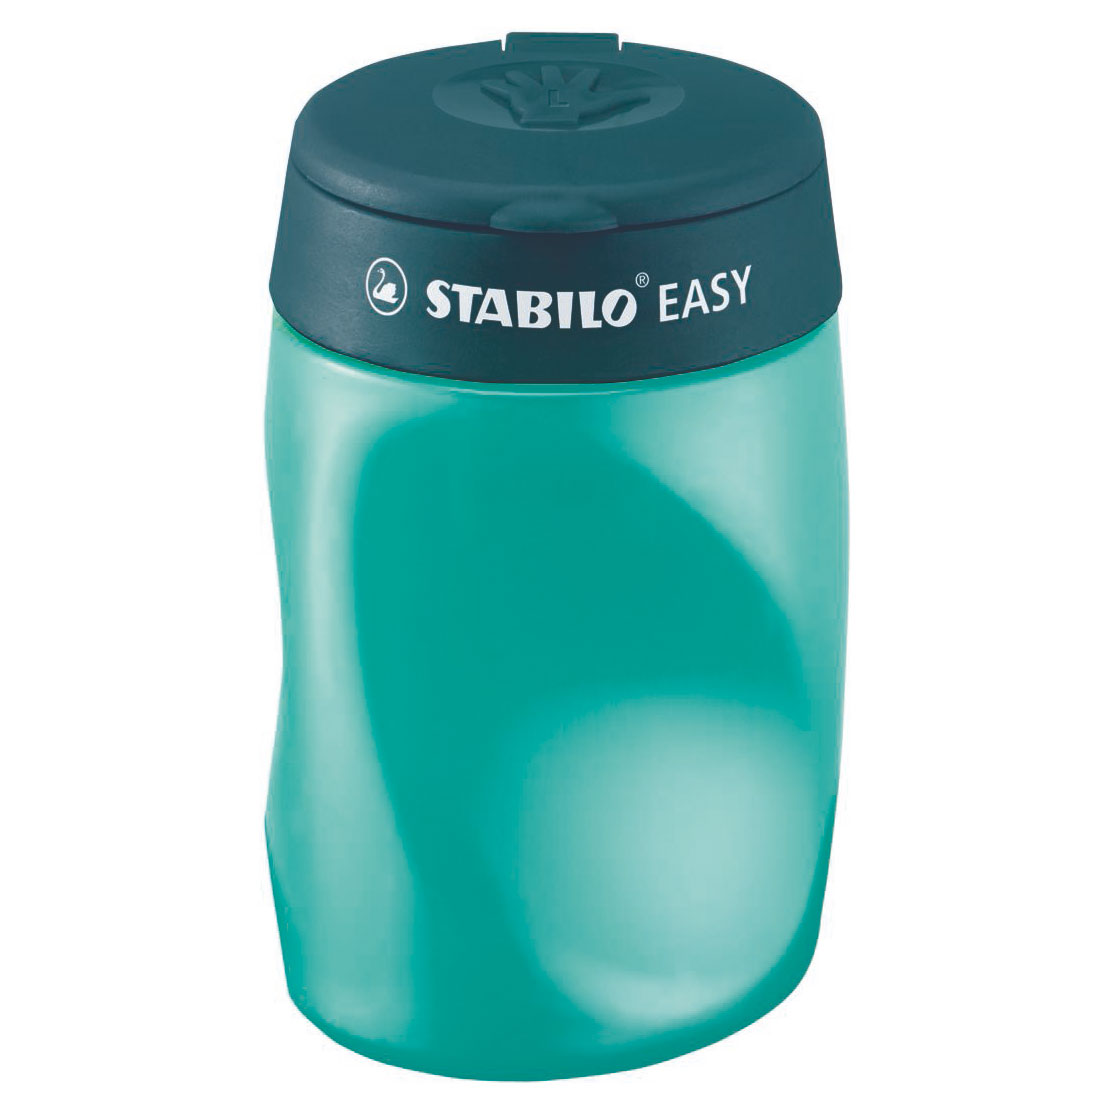 Stabilo Easy 3-in-1 Links Puntenslijper - Petrol